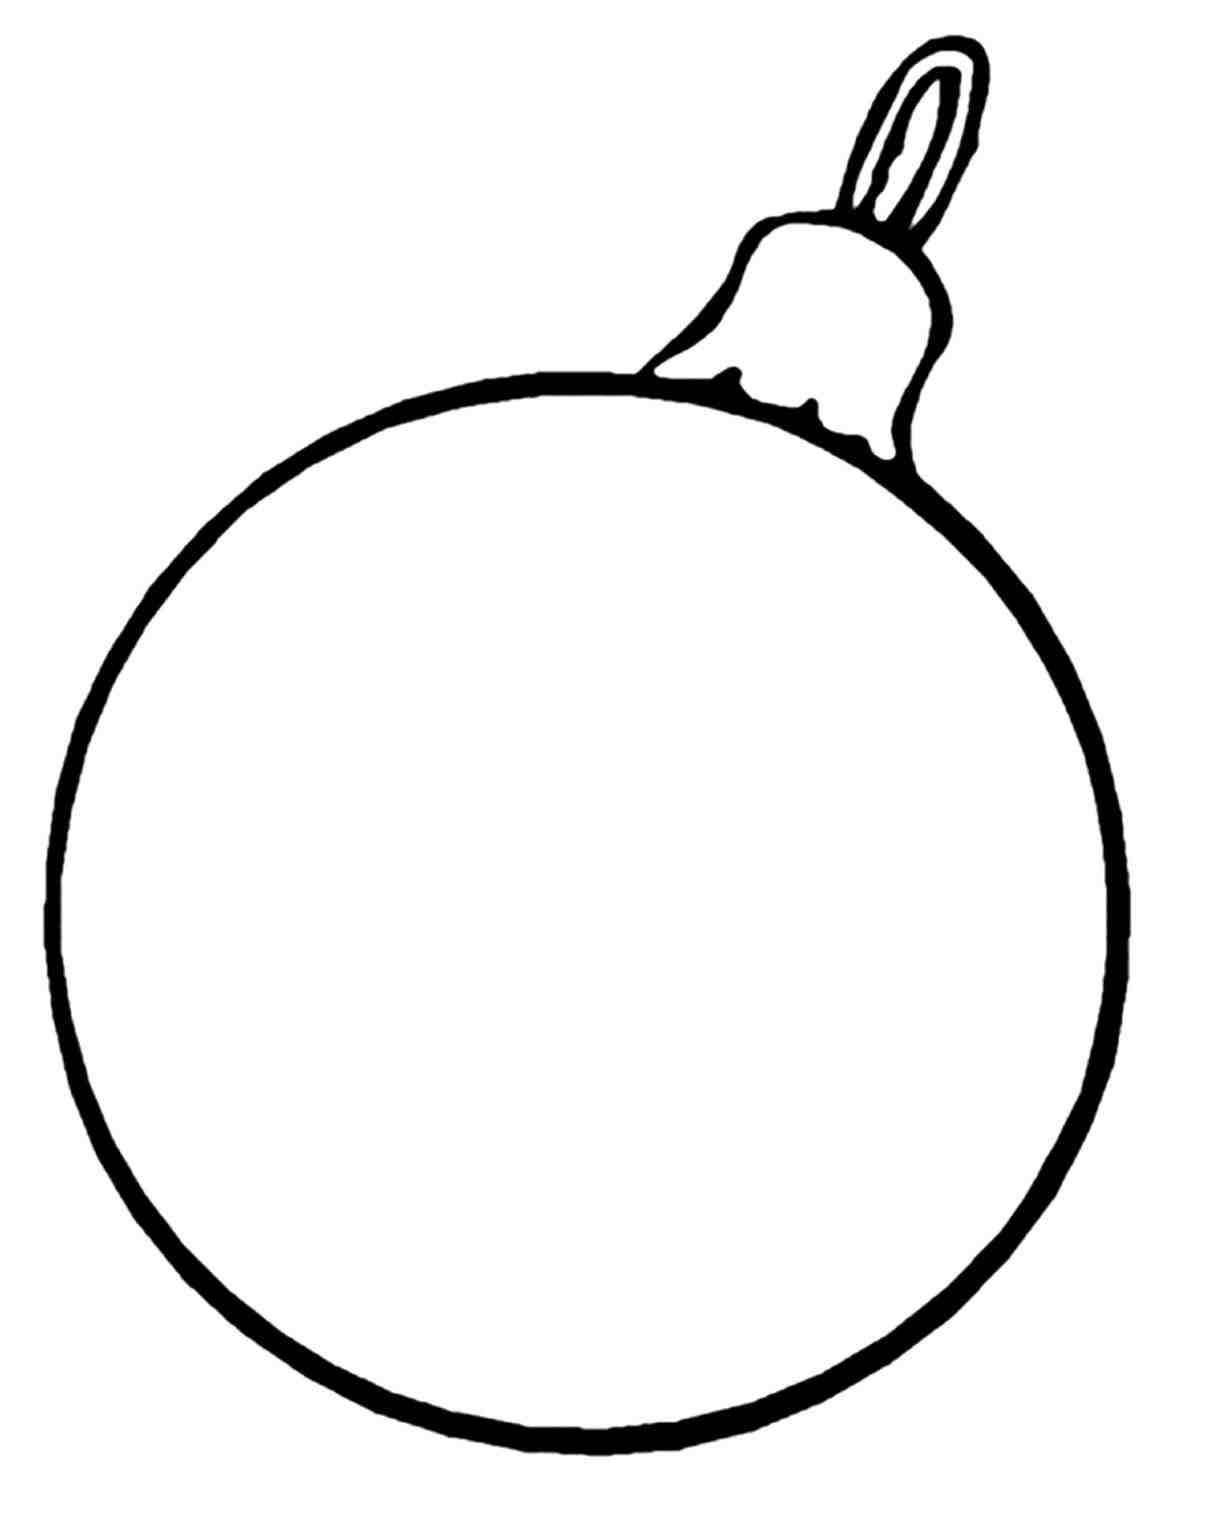 1213x1536 Christmas Tree Drawing Outline. Pin Christmas Tree Clipart